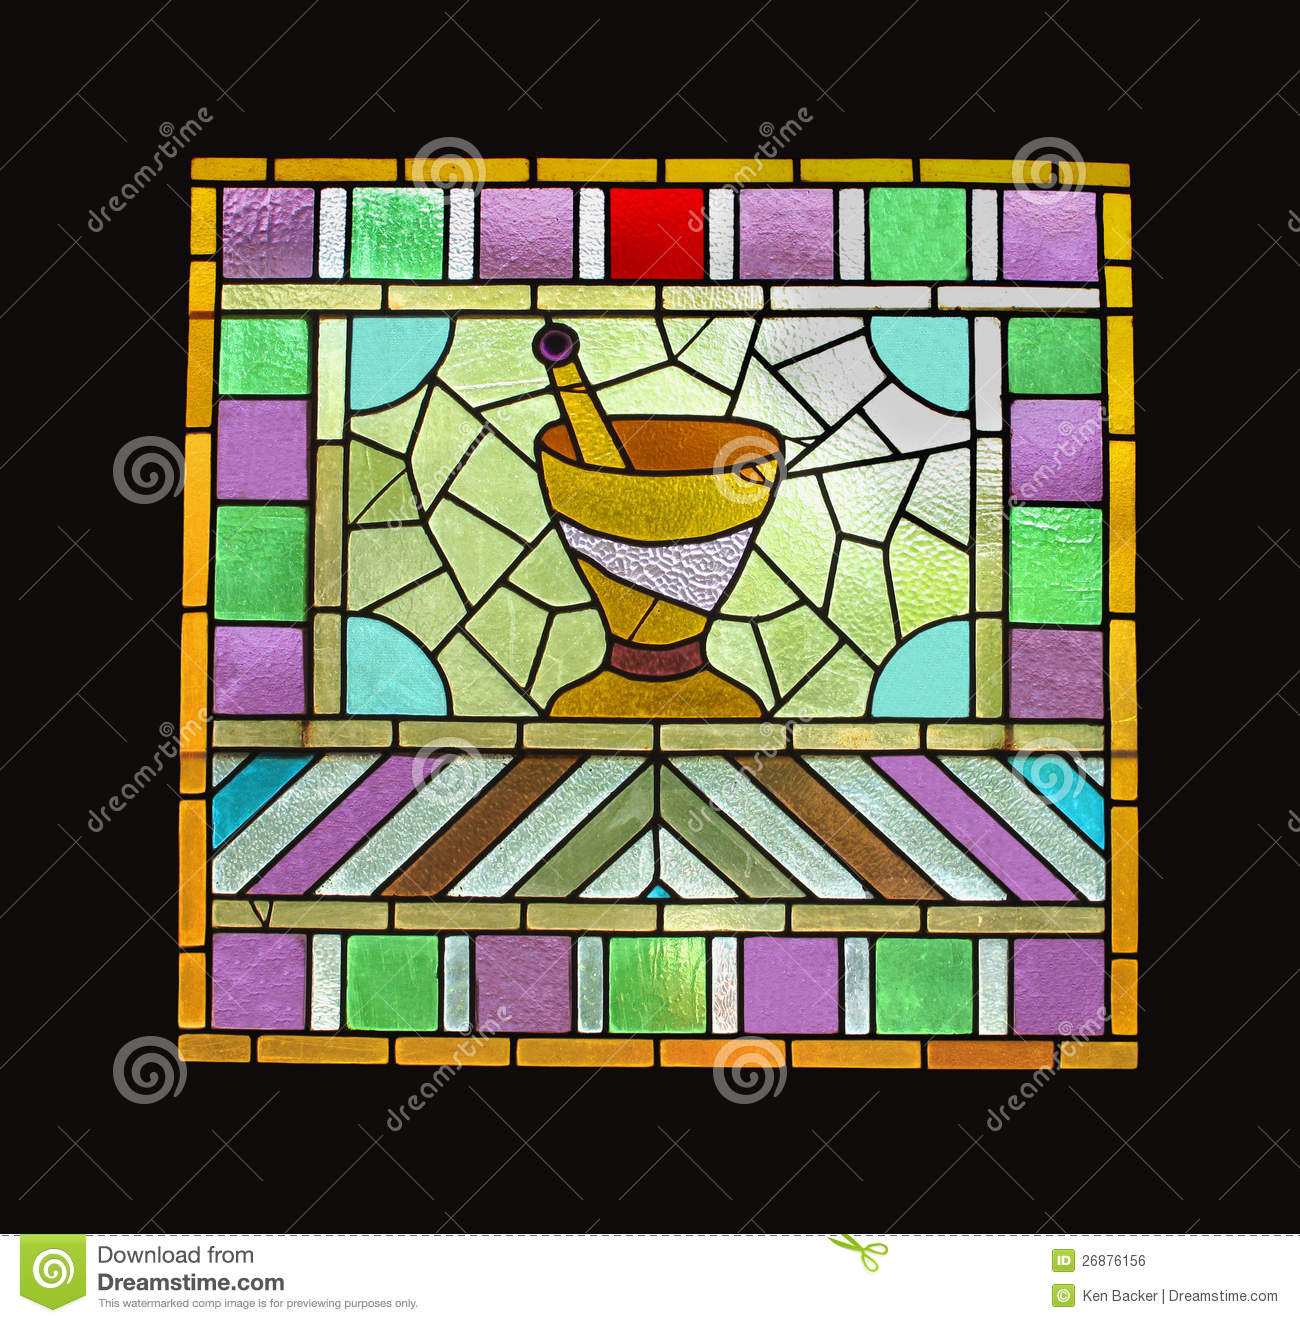 Stained glass window apothecary window isolated royalty free stock image image 26876156 - Eco friendly large glass windows offering effective energy savings for contemporary residence ...